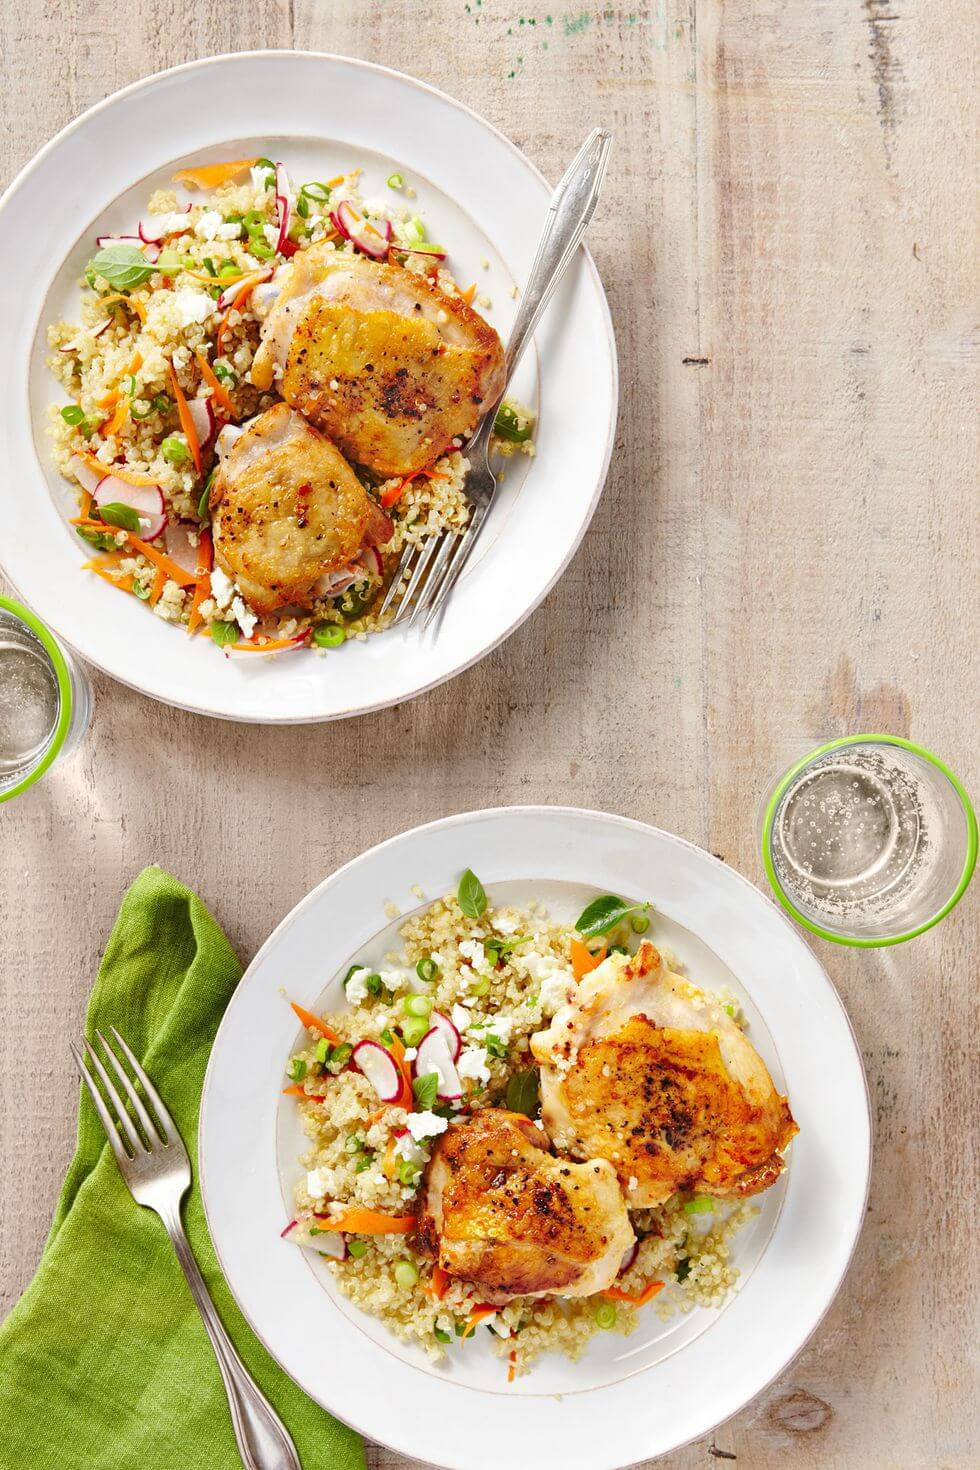 Fall Sunday Dinner Ideas  90 Delicious Sunday Dinner Ideas Easy and Quick [For Two